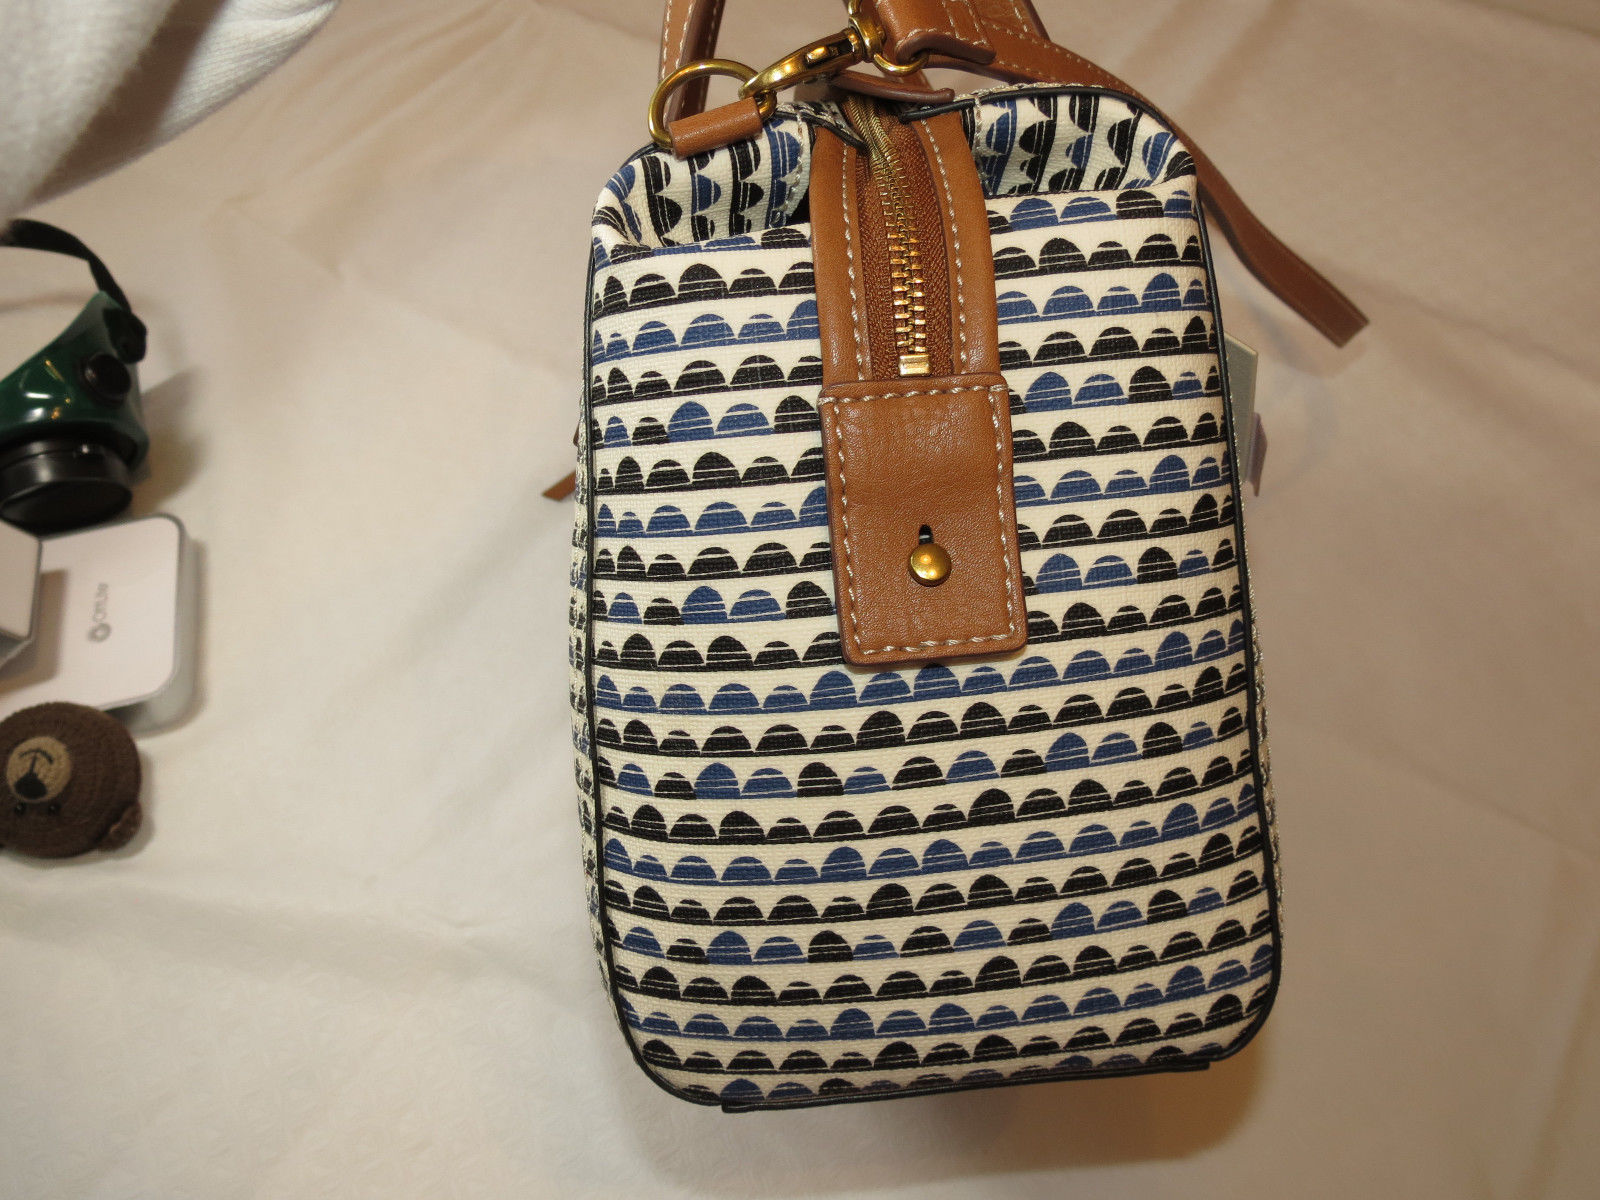 Fossil Passport East West Satchel Blue Floral Zb 6762452 Daftar Keely Crossbody Red Multi 6933995 Zb7136469 Emma Print And 50 Similar Items Source